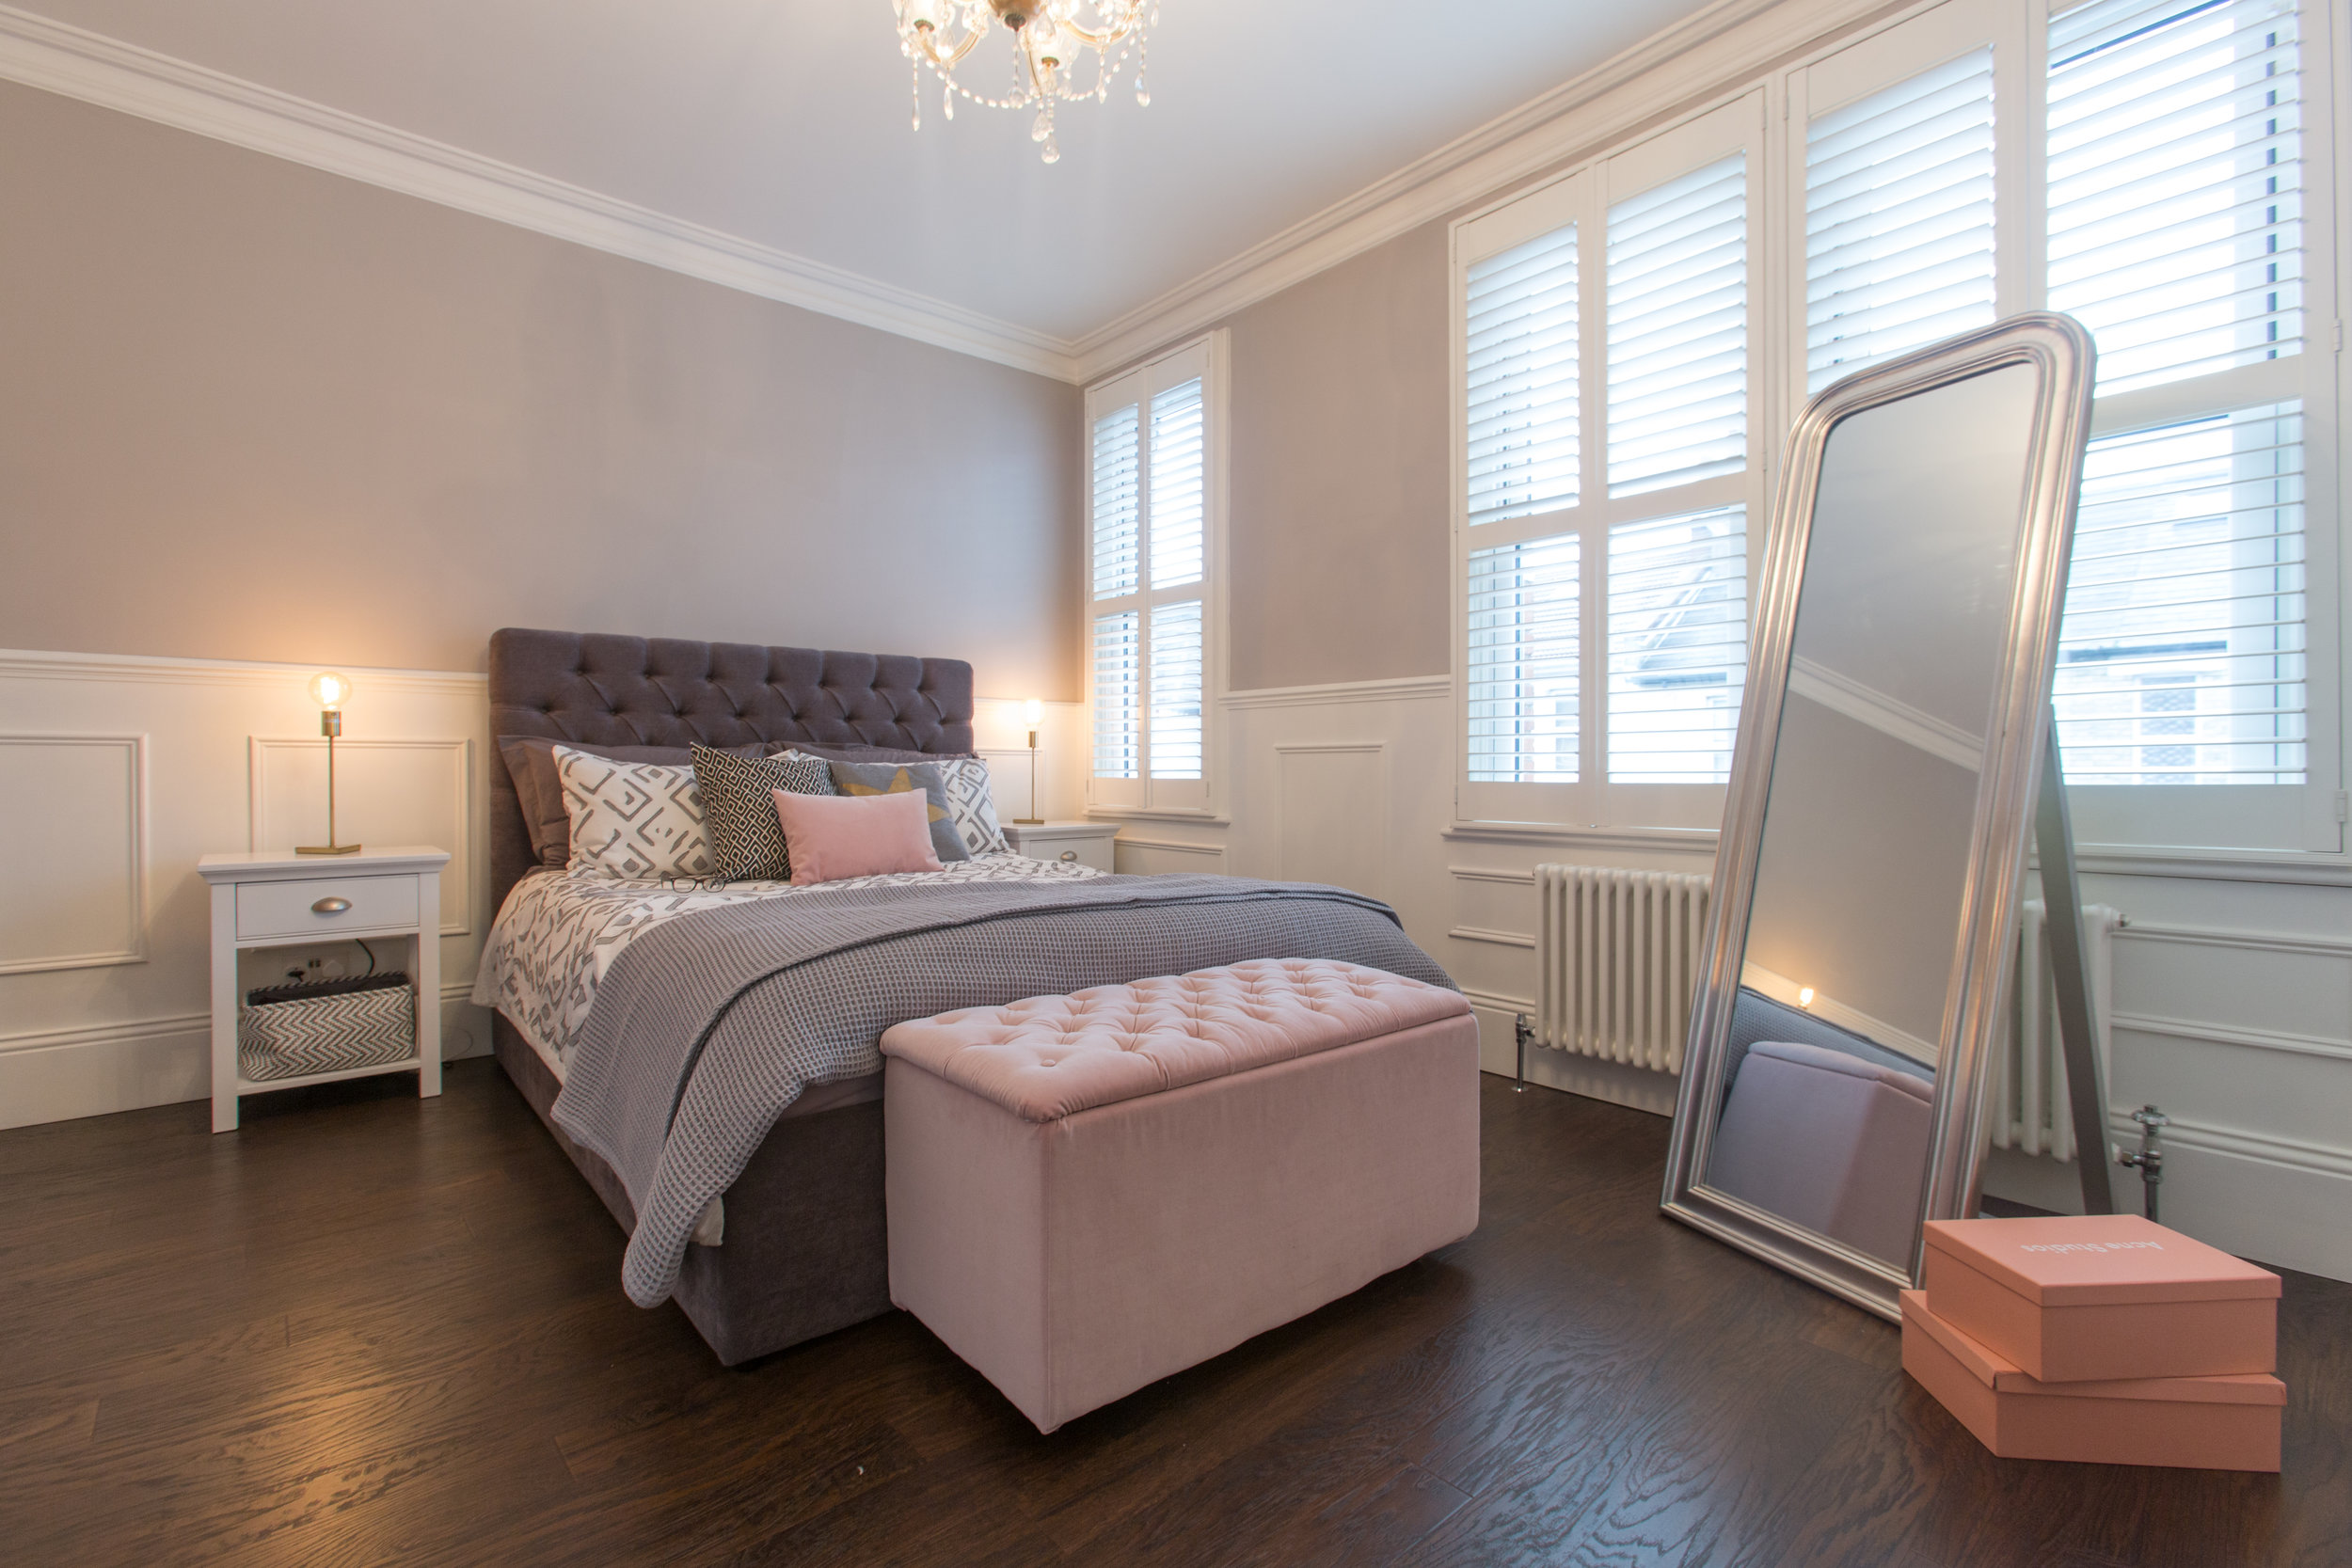 Panneled wall, white and grey bedroom